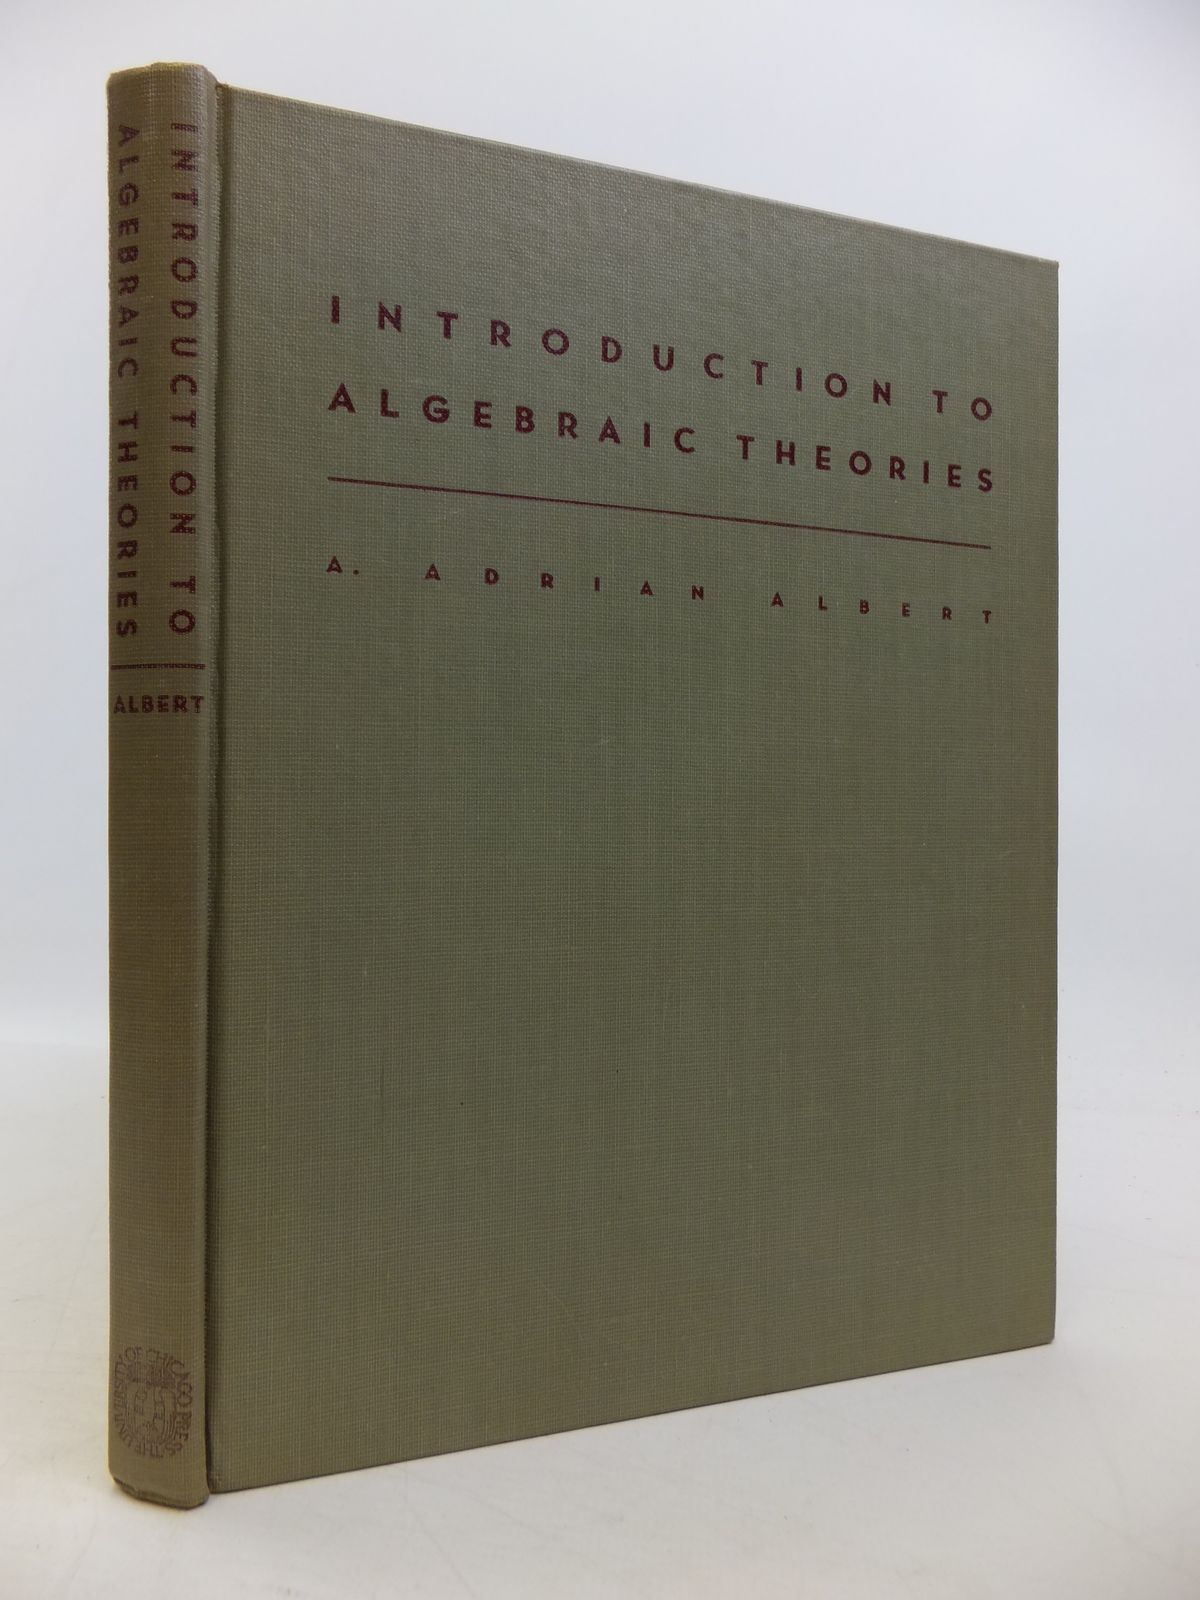 Photo of INTRODUCTION TO ALGEBRAIC THEORIES written by Albert, A. Adrian published by University of Chicago Press (STOCK CODE: 1811516)  for sale by Stella & Rose's Books